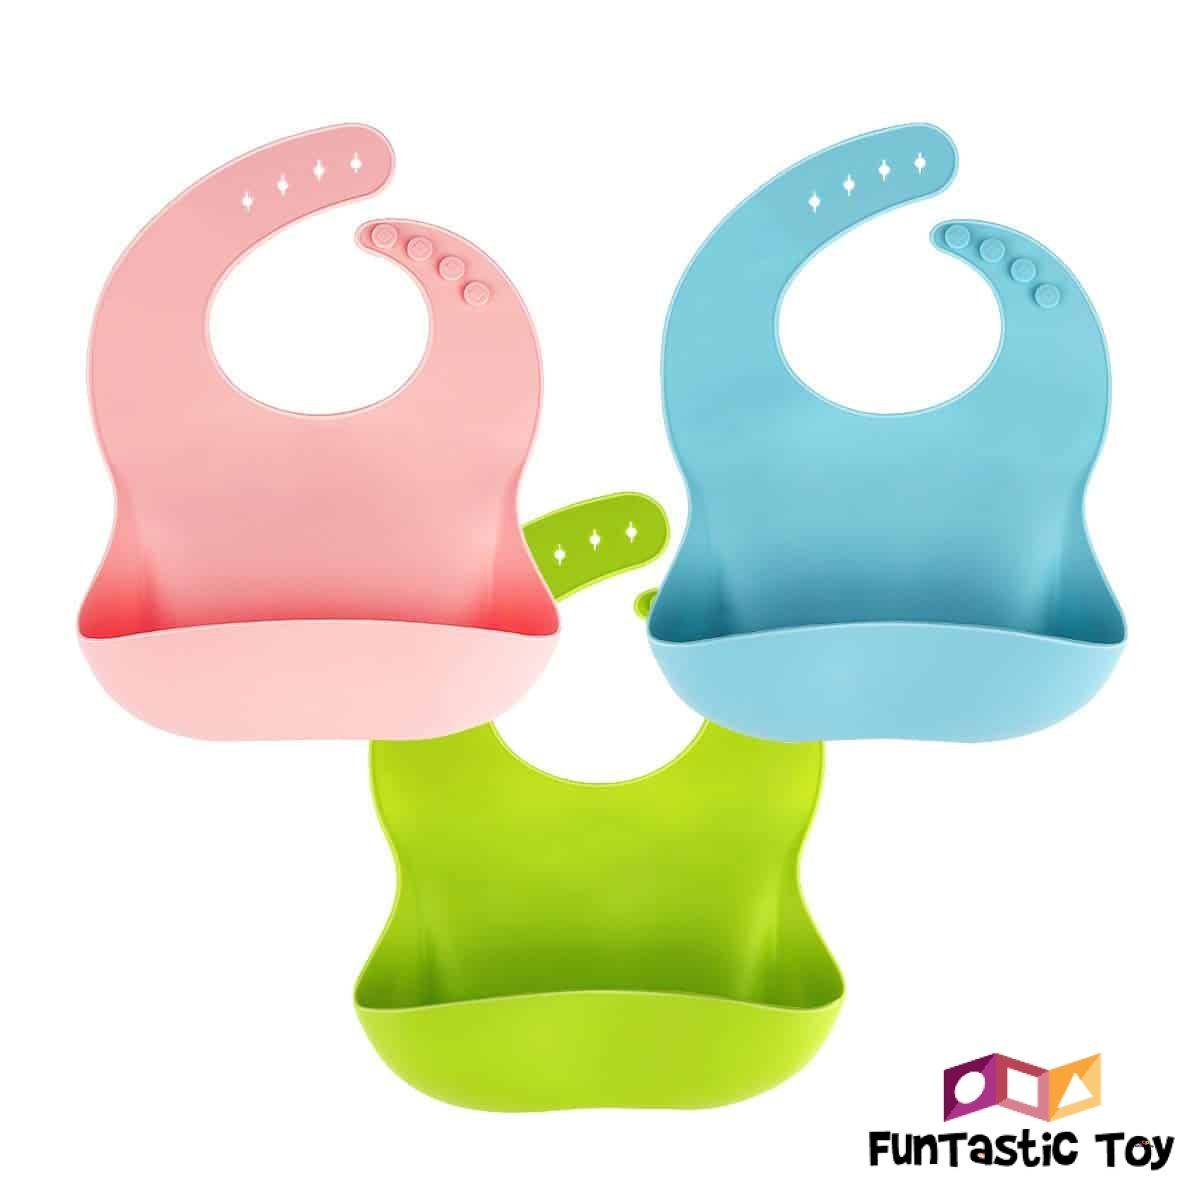 Product image of Waterproof Silicone Bib Food Crumb Catcher Blue and Red